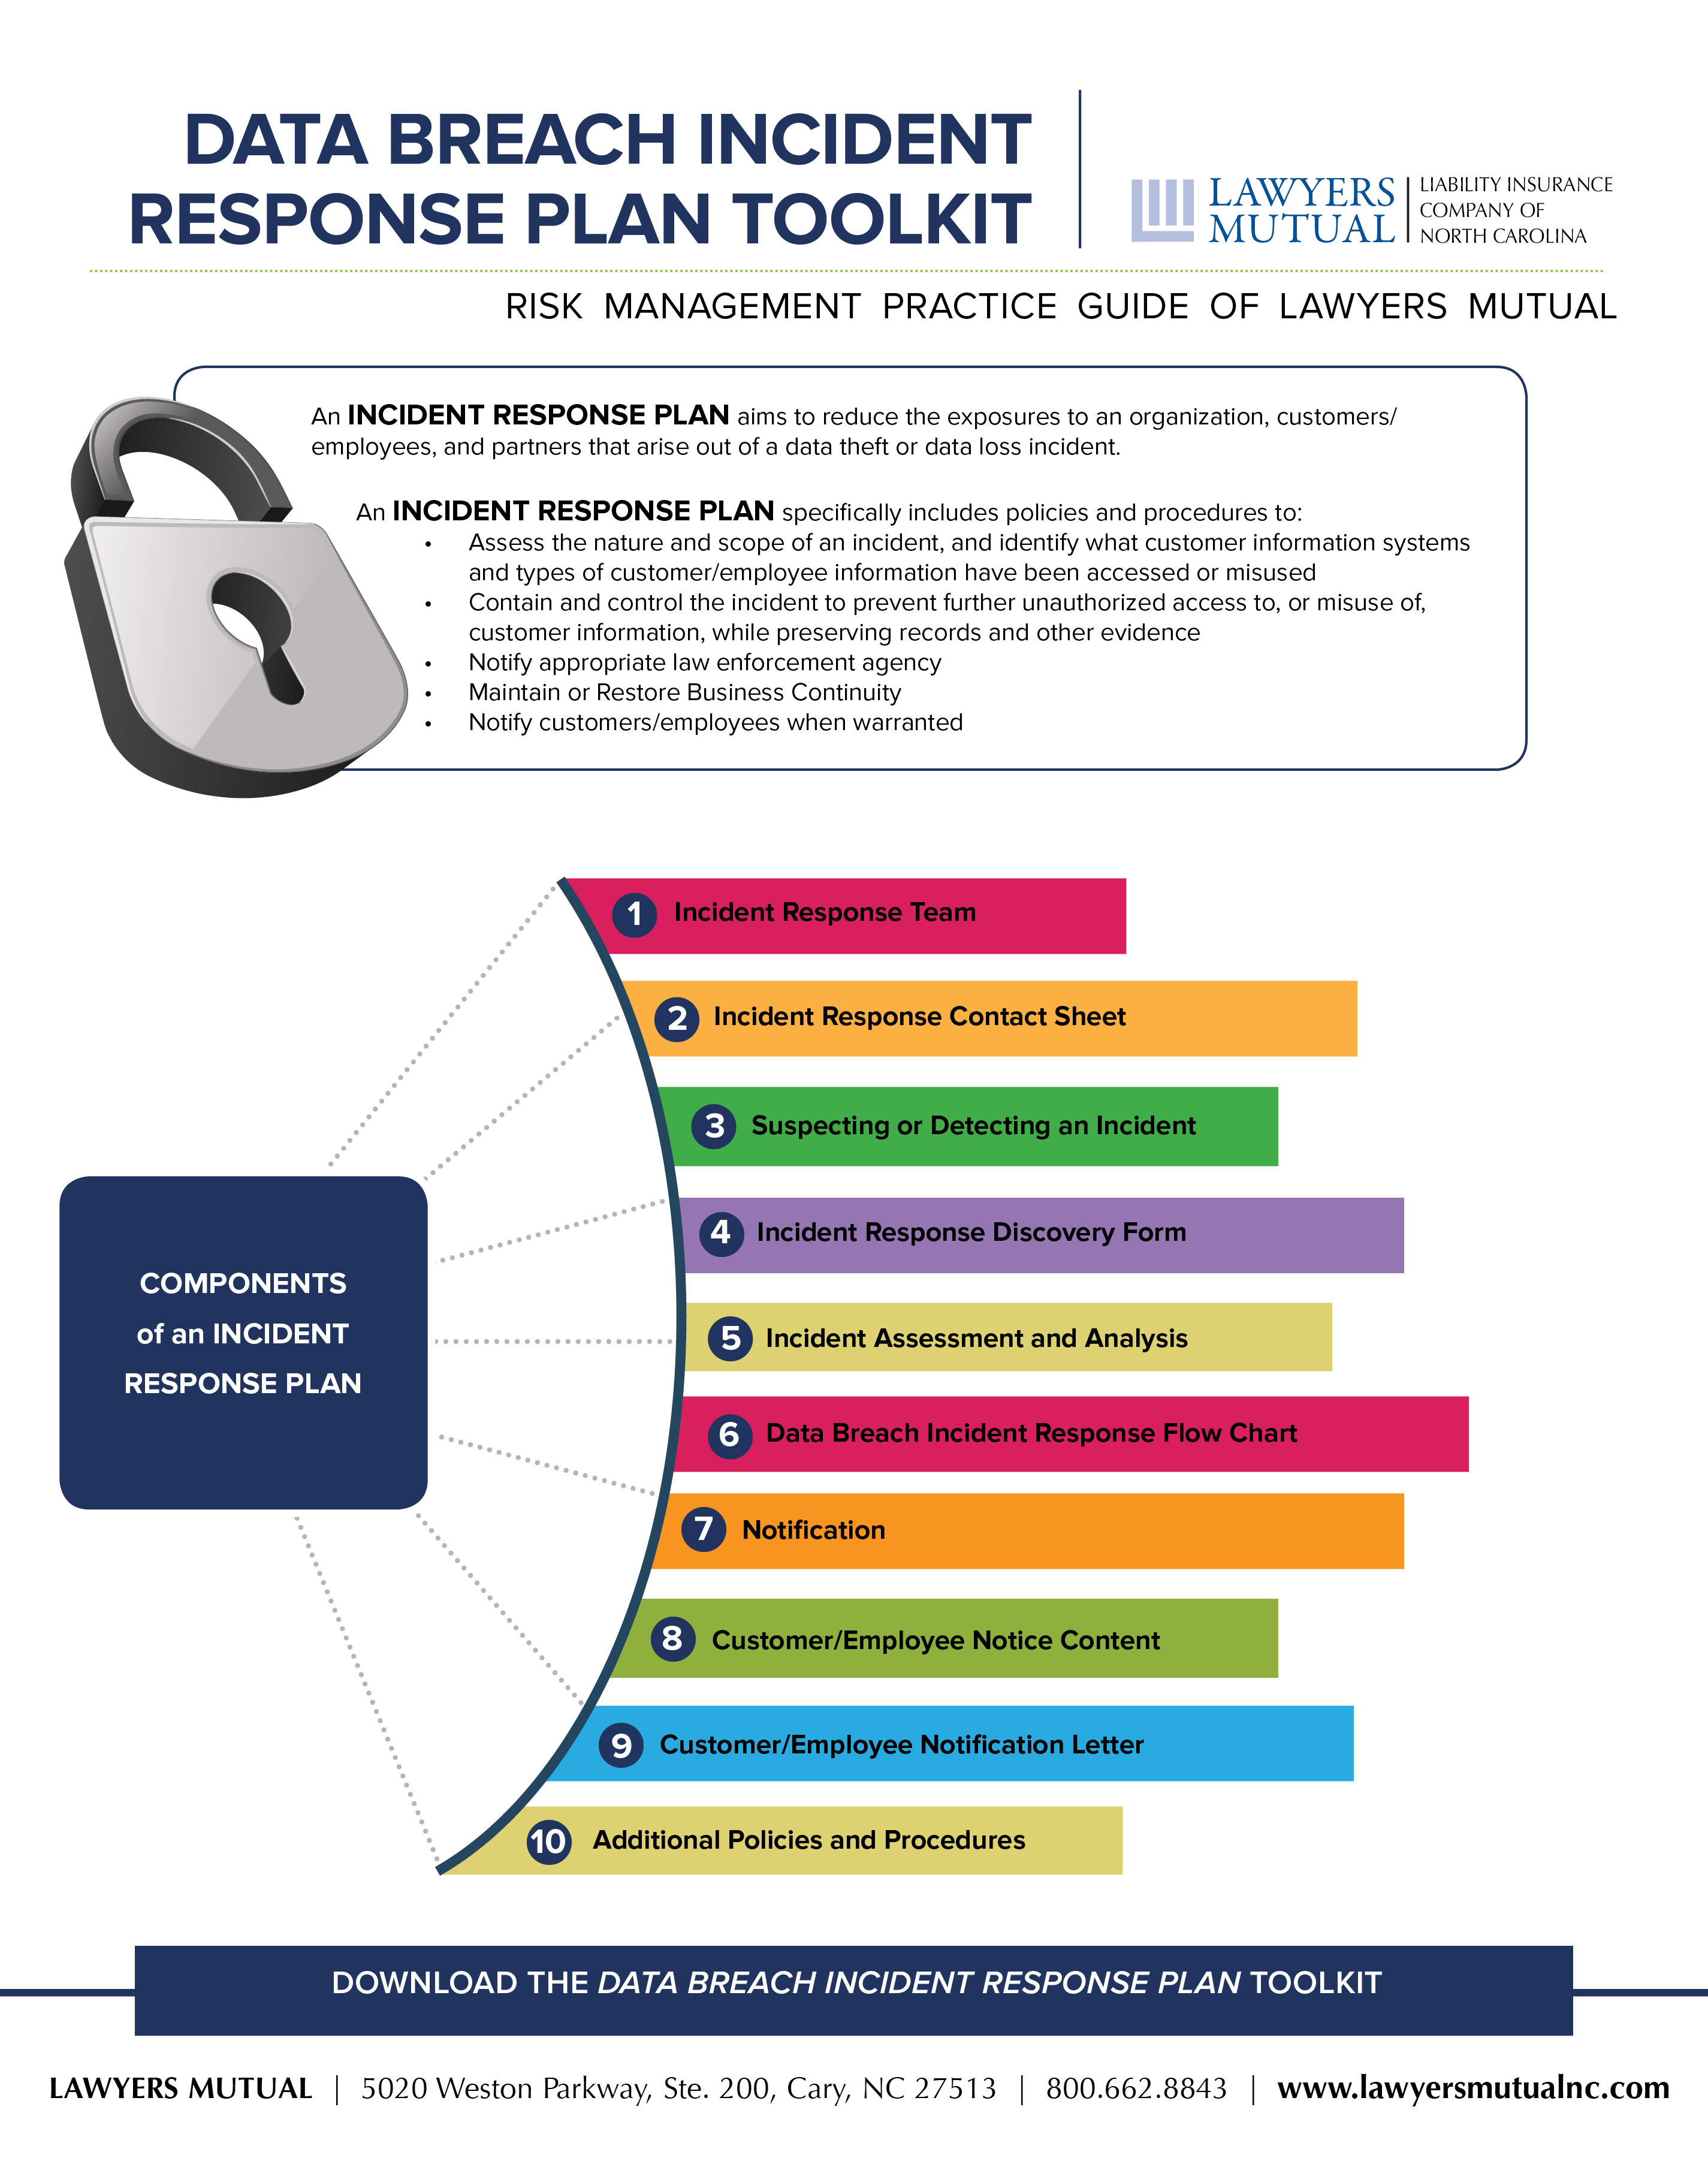 Data Breach Incident Response Plan Toolkit Infographic